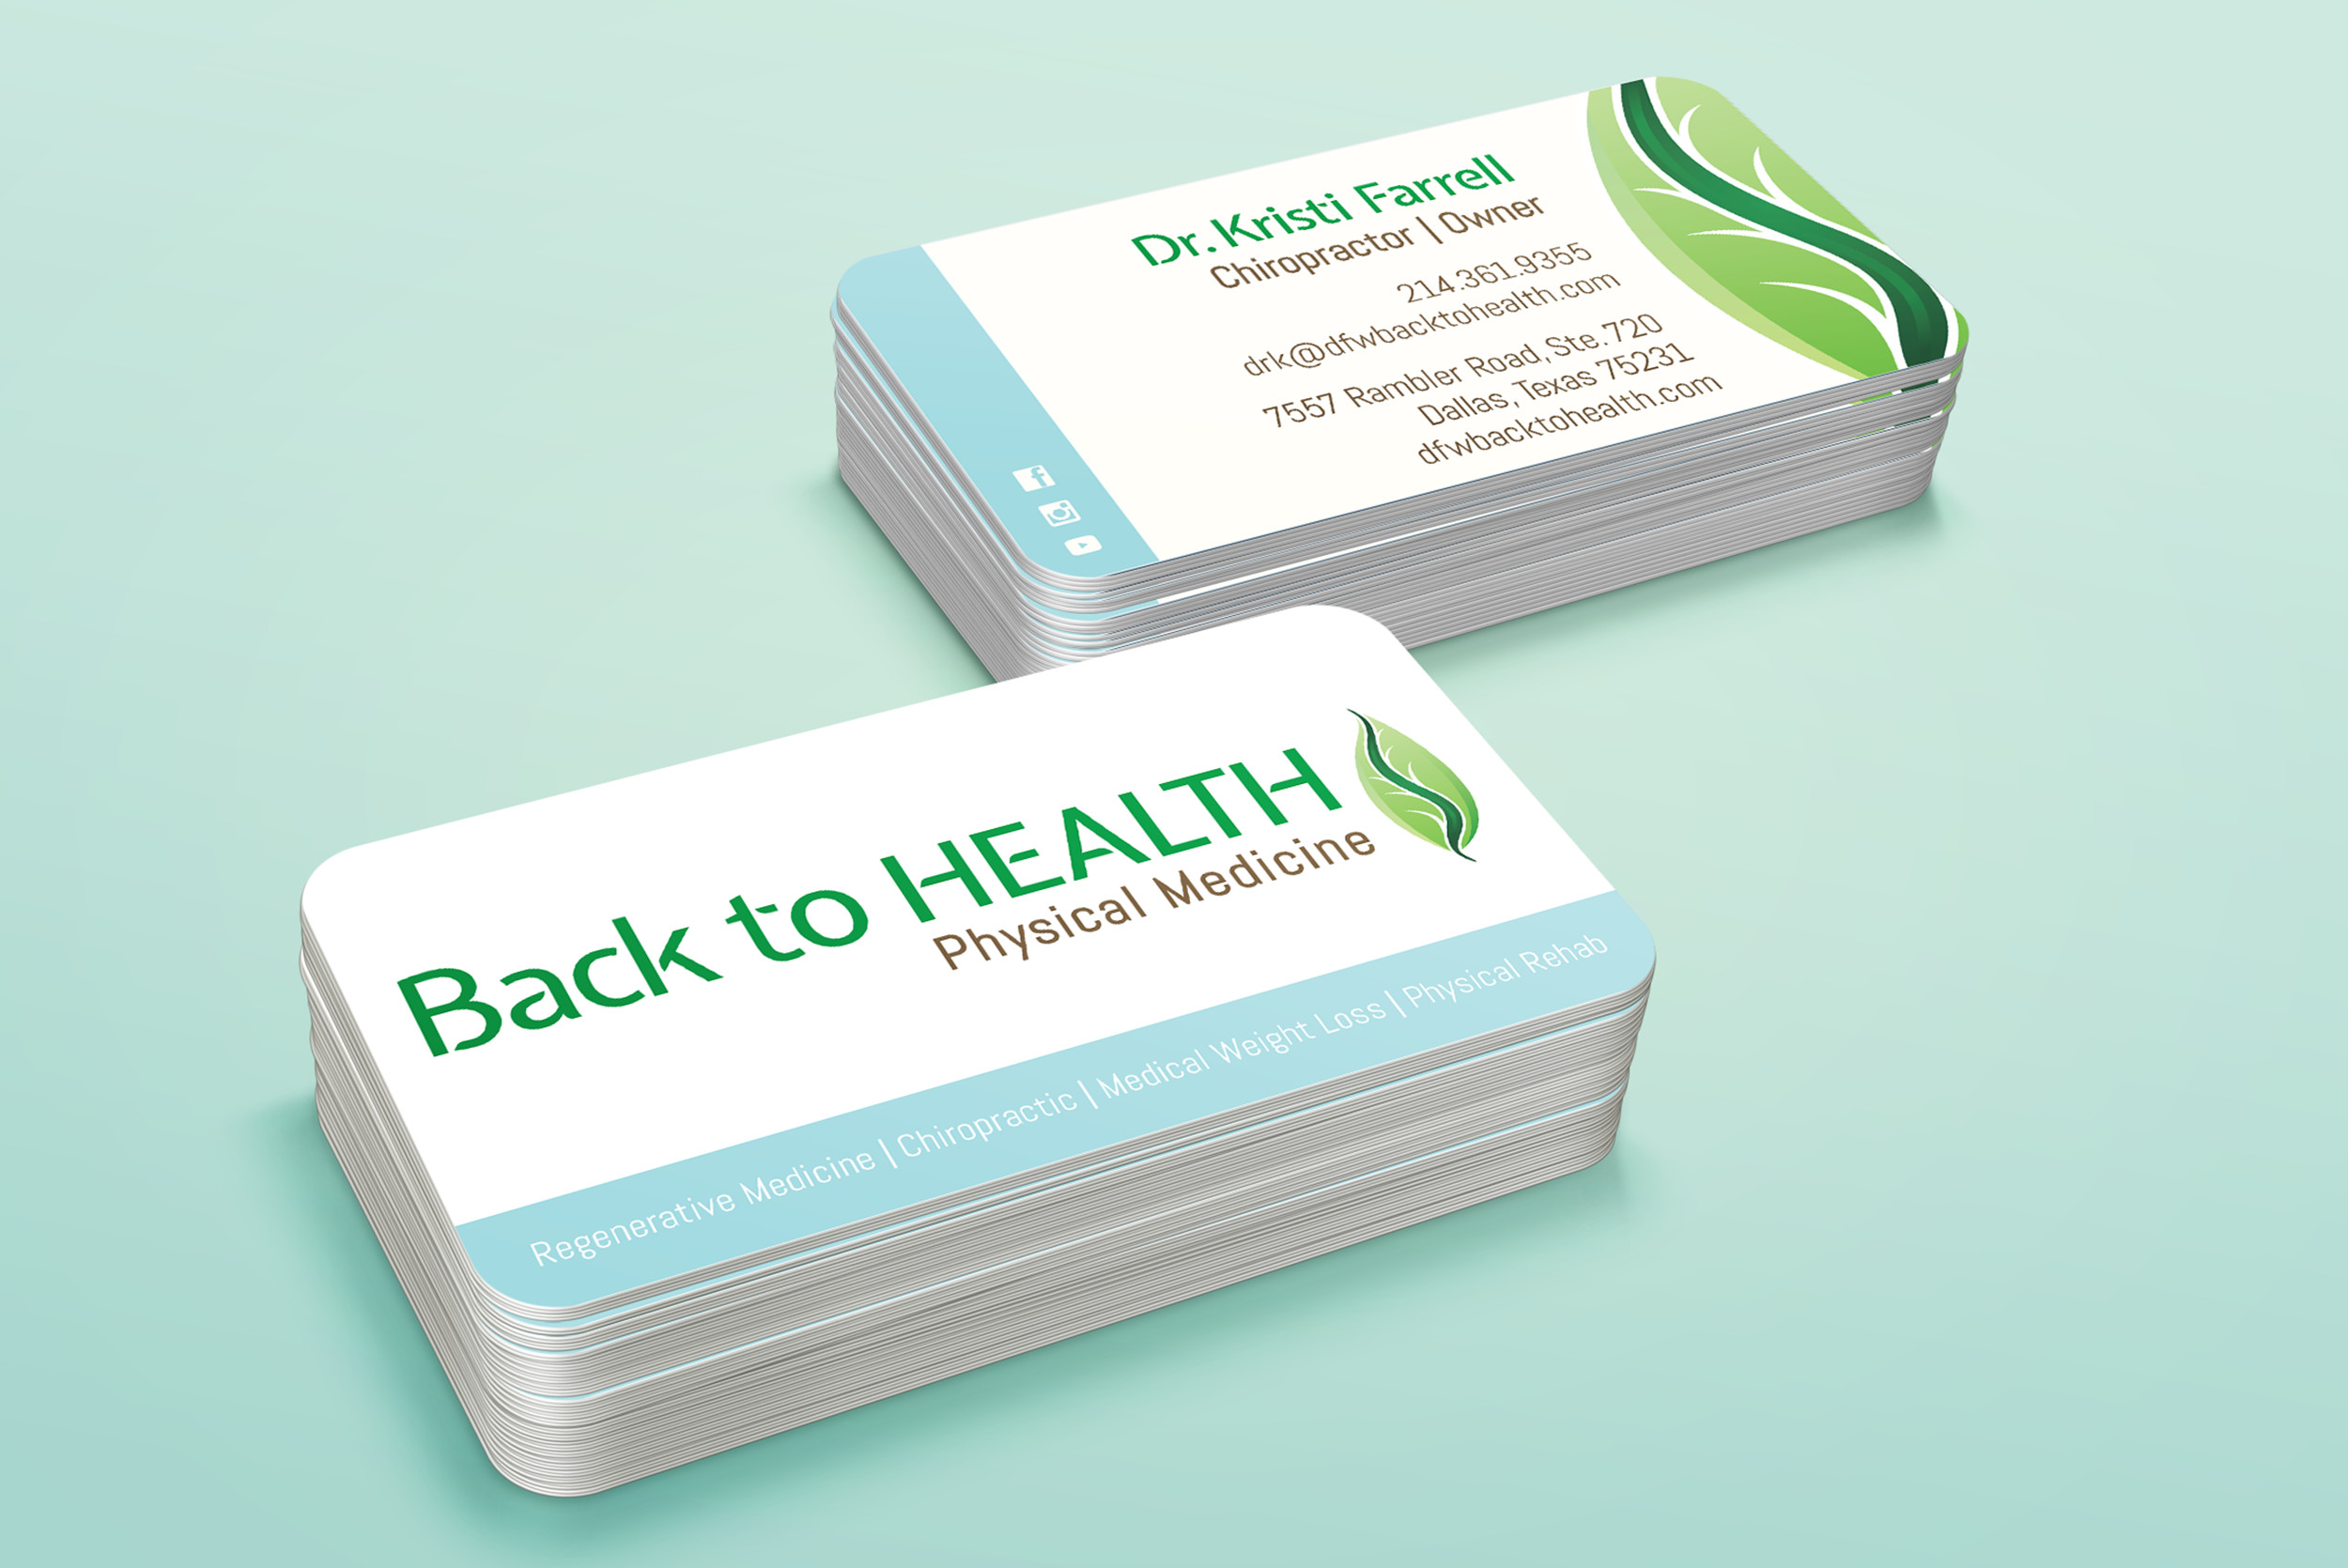 Back to Health Business Cards